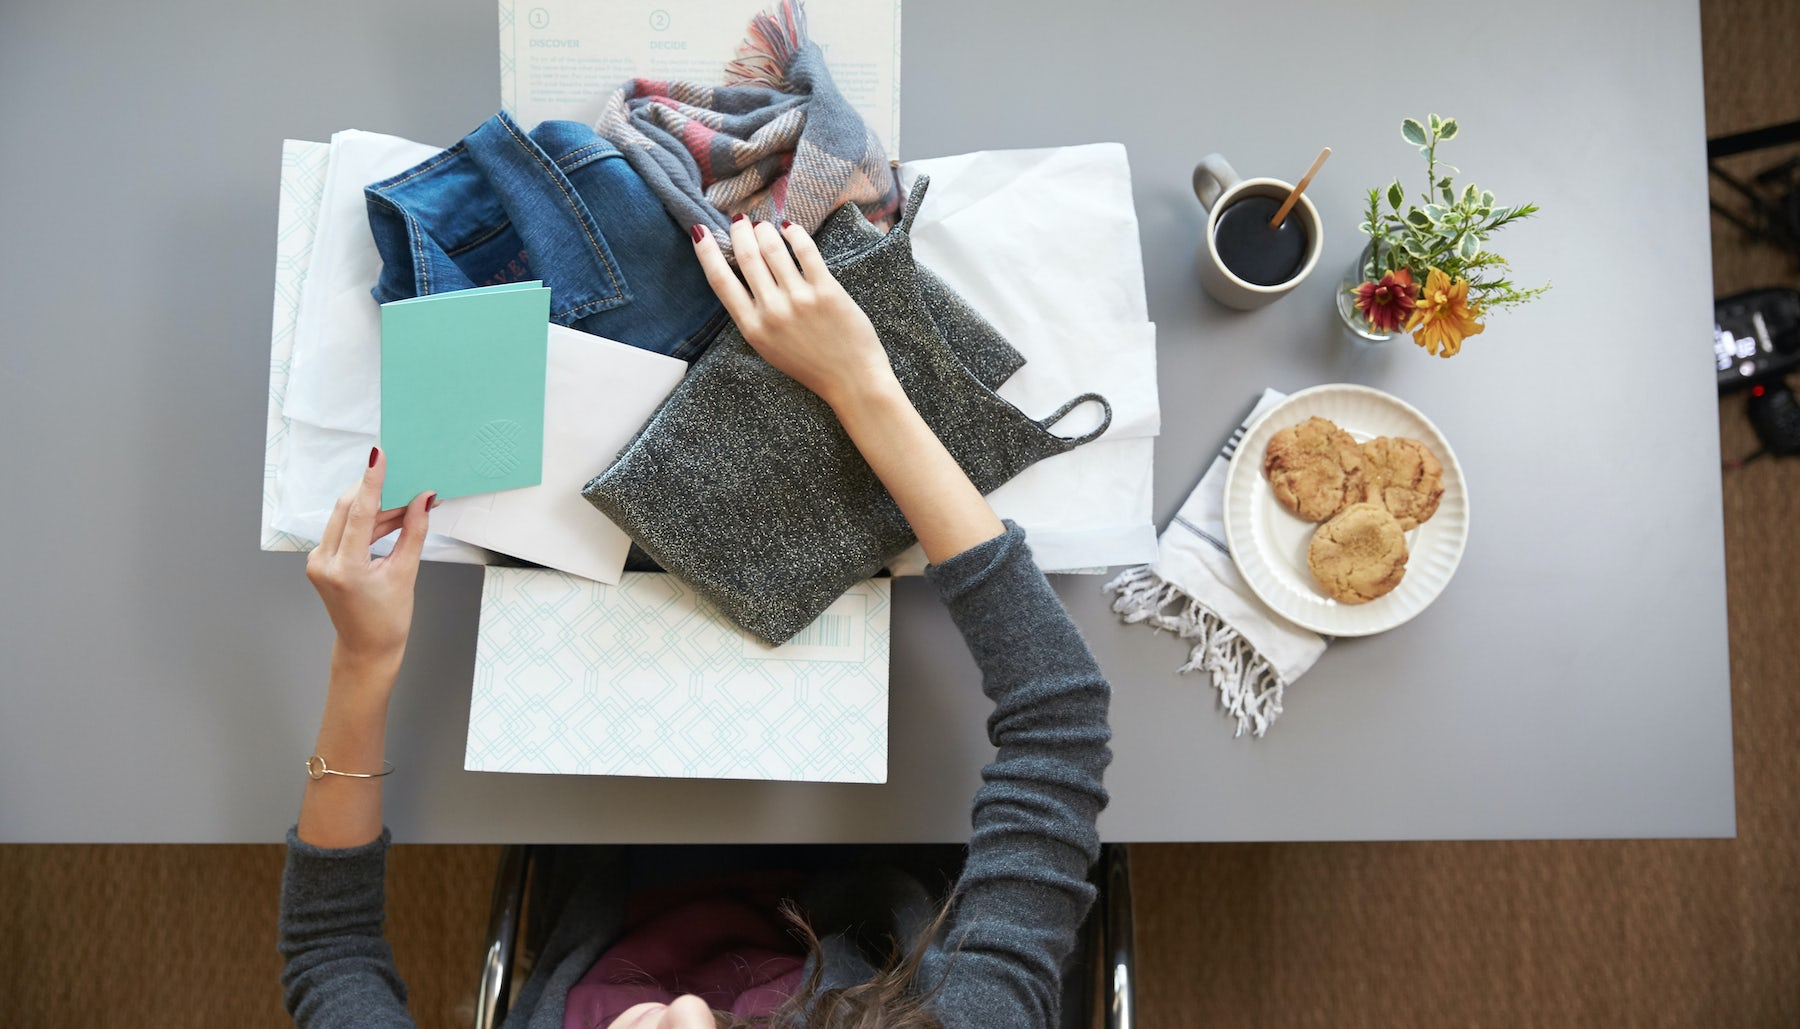 StitchFix sends customers boxes of clothes selected using a combination of personal stylists and algorithms | Source: StitchFix